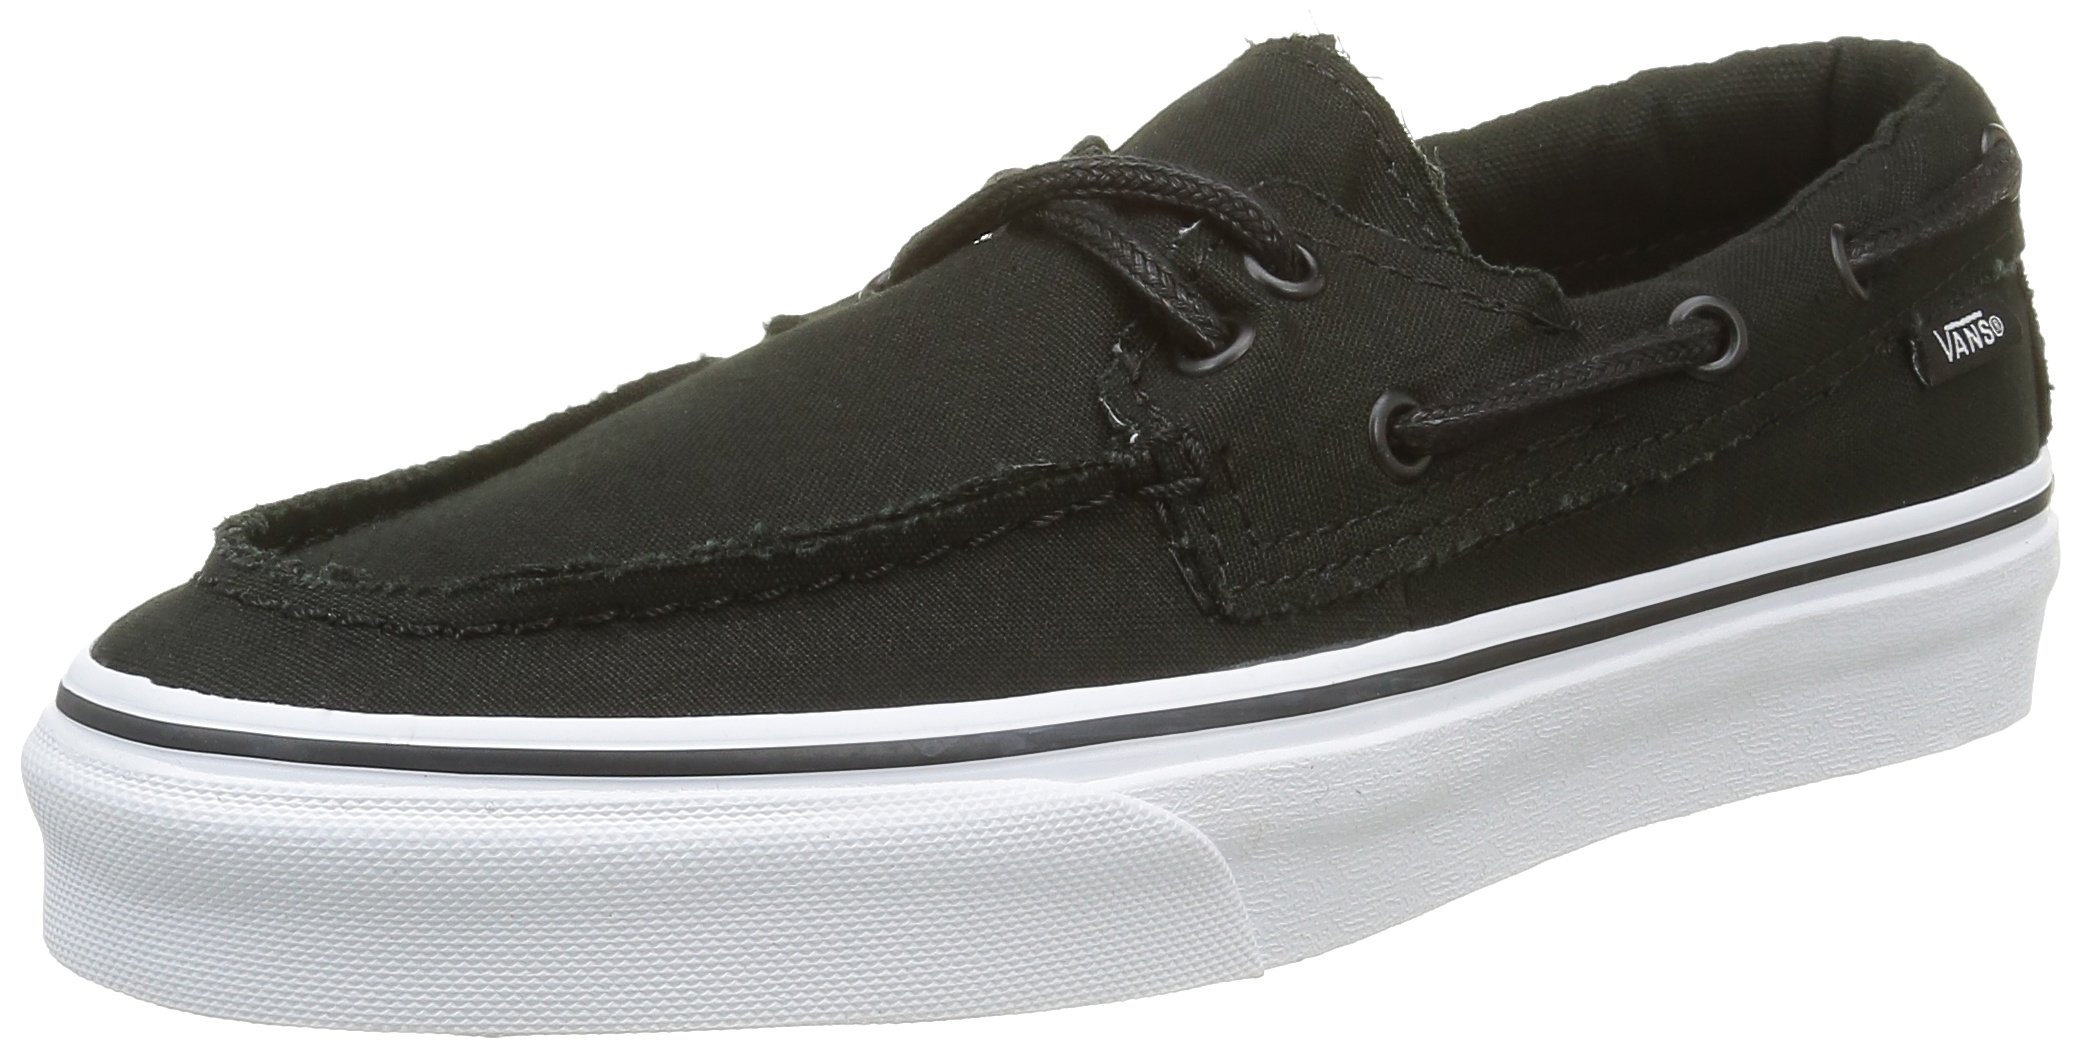 131e339d3357 Galleon - Vans Adult s Zapato Del Barco Boat Shoes - Black